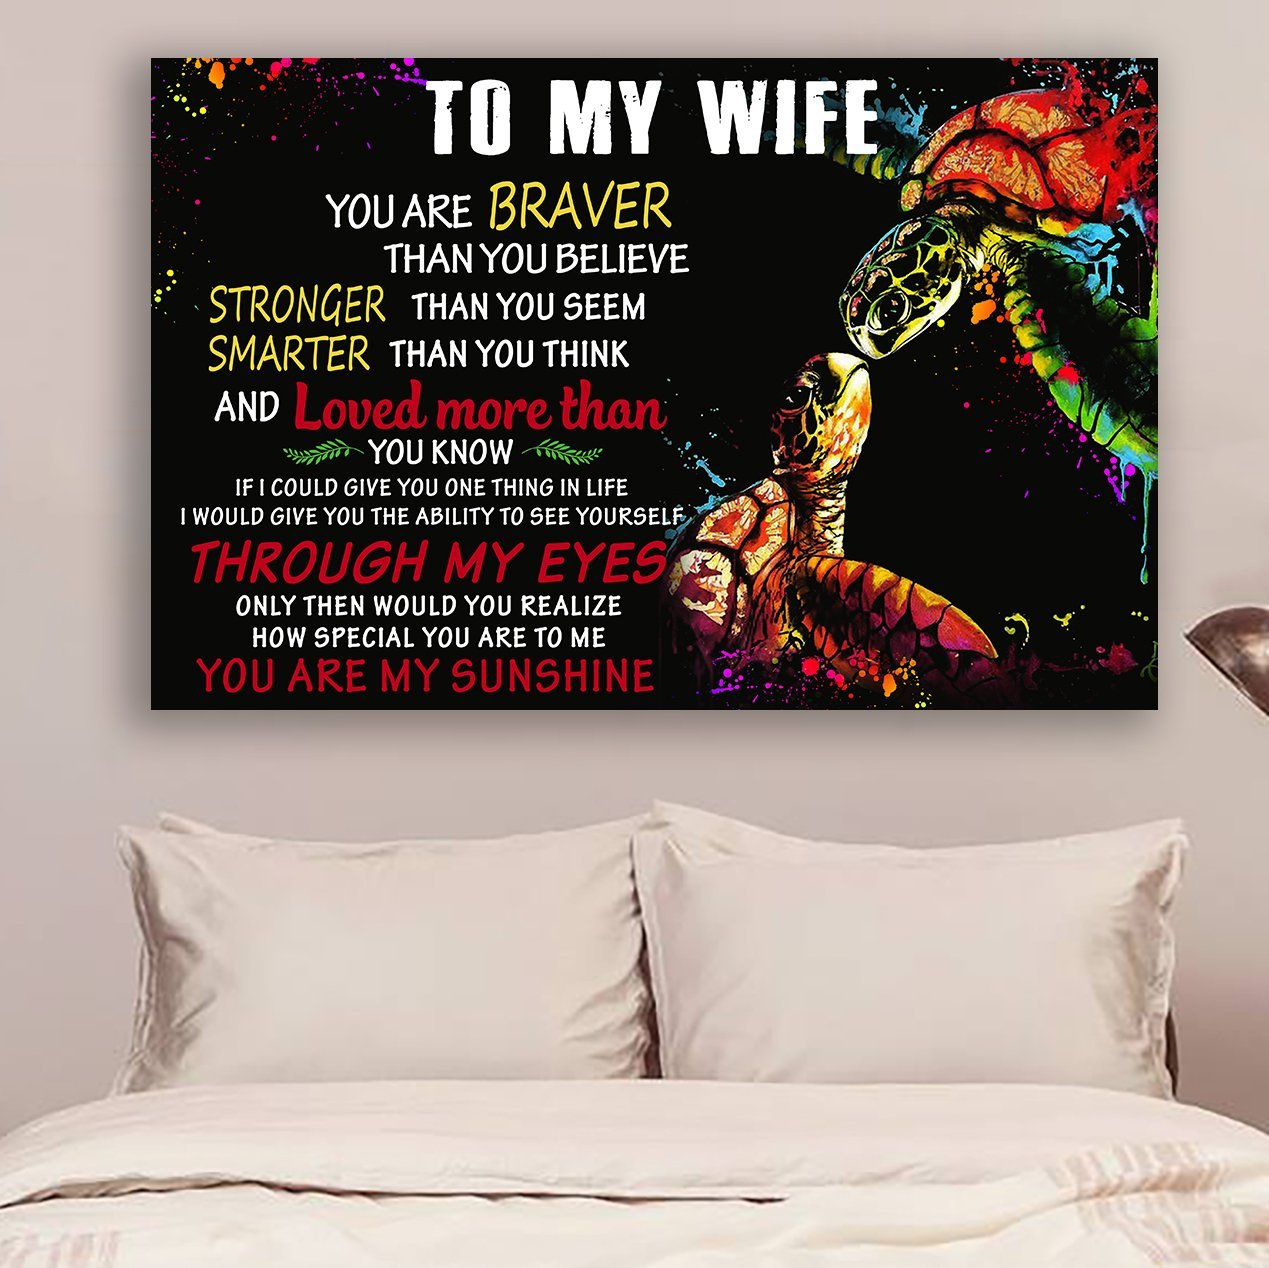 (cv1044) LHD Turtle Poster - To my wife - You are braver